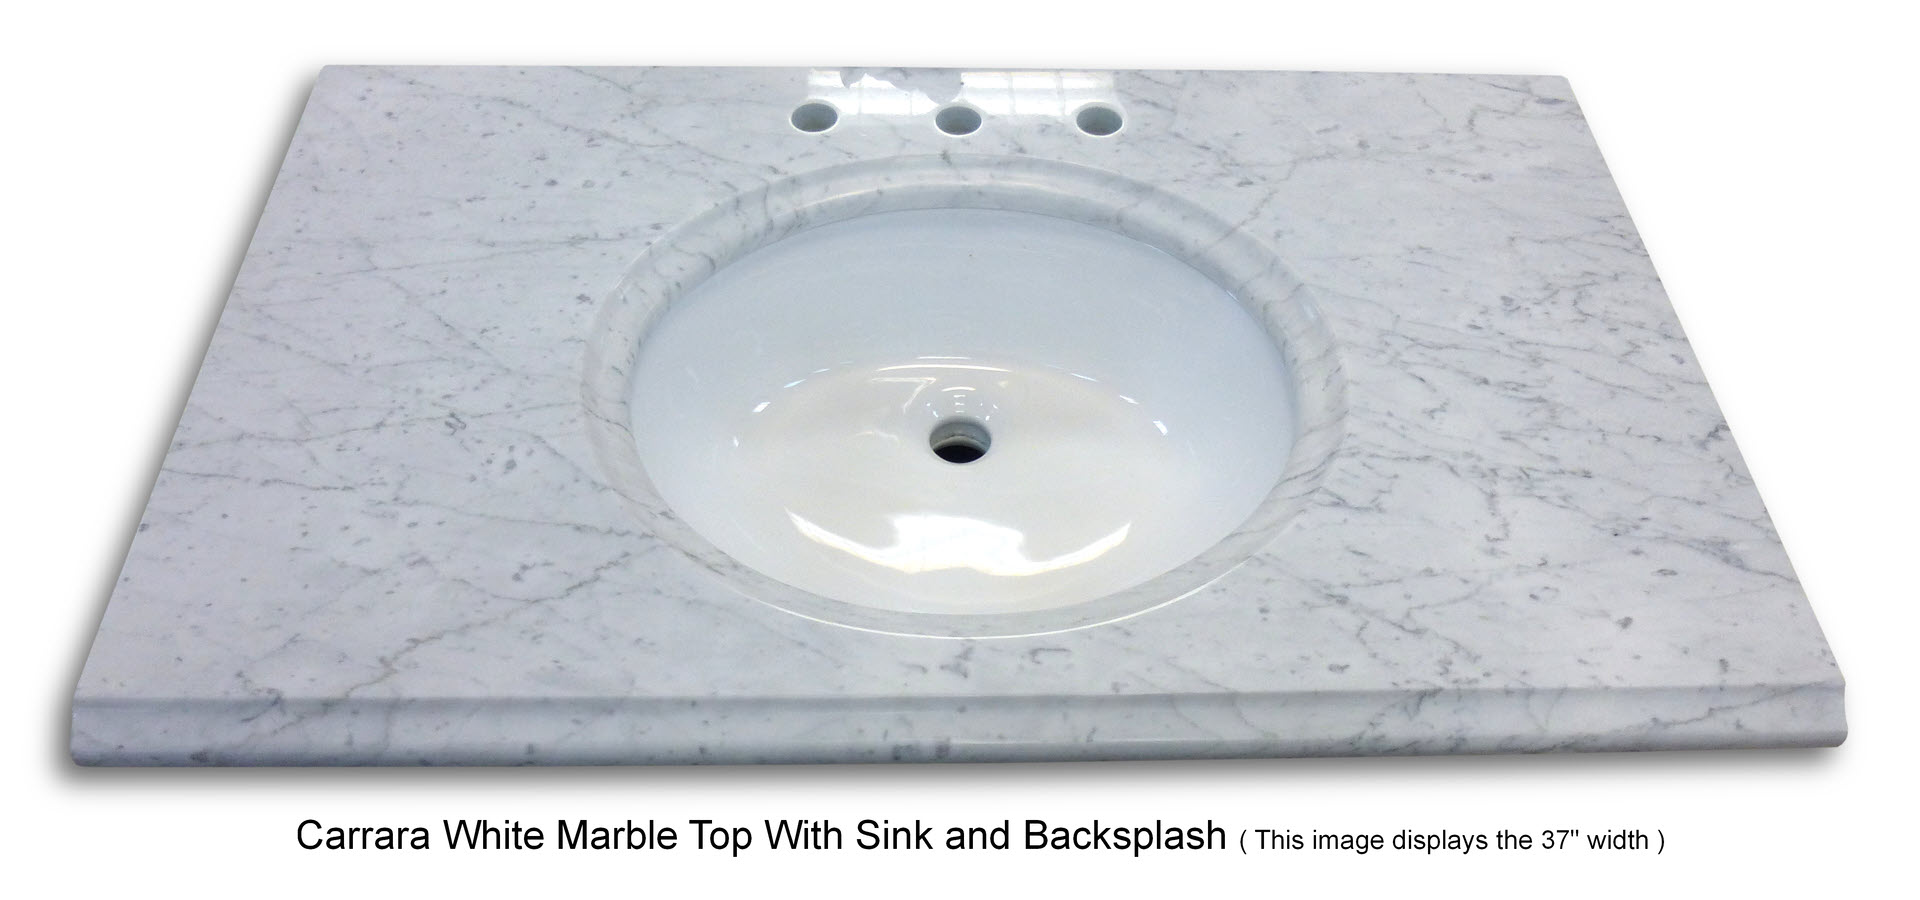 Carrara White Marble Top 43 Inches Wide With Sink And Backsplash